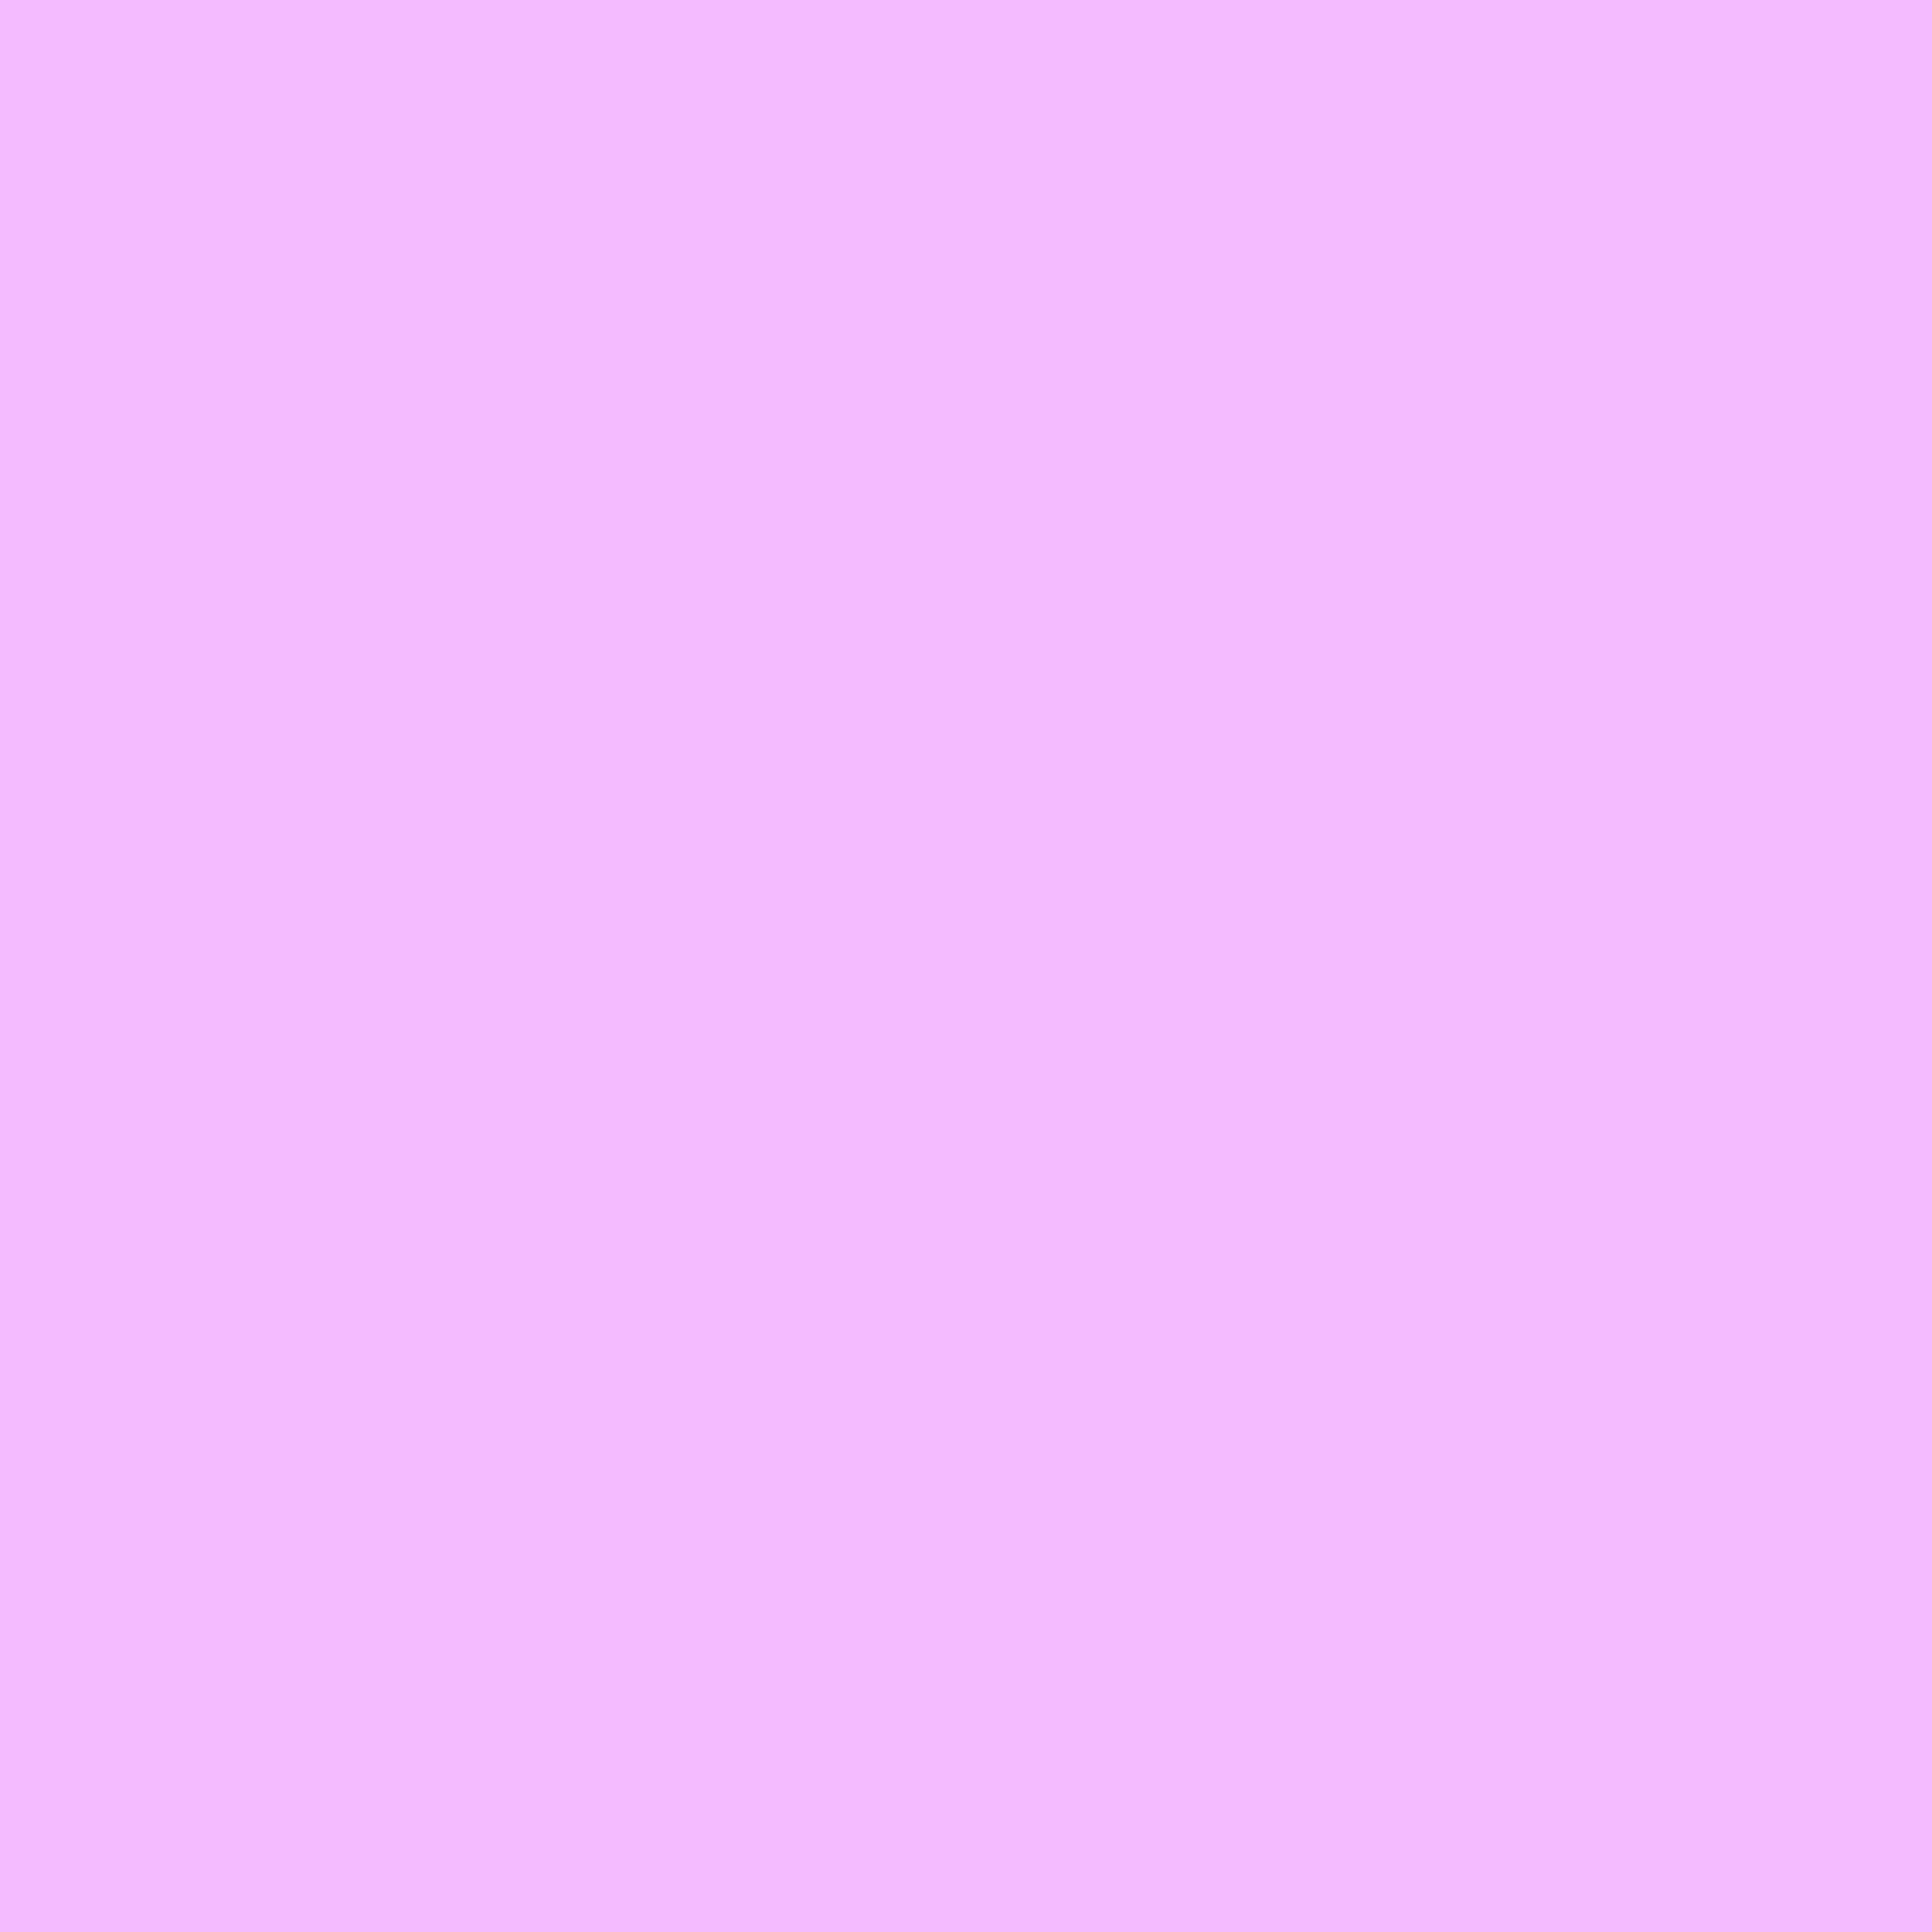 2048x2048 Electric Lavender Solid Color Background